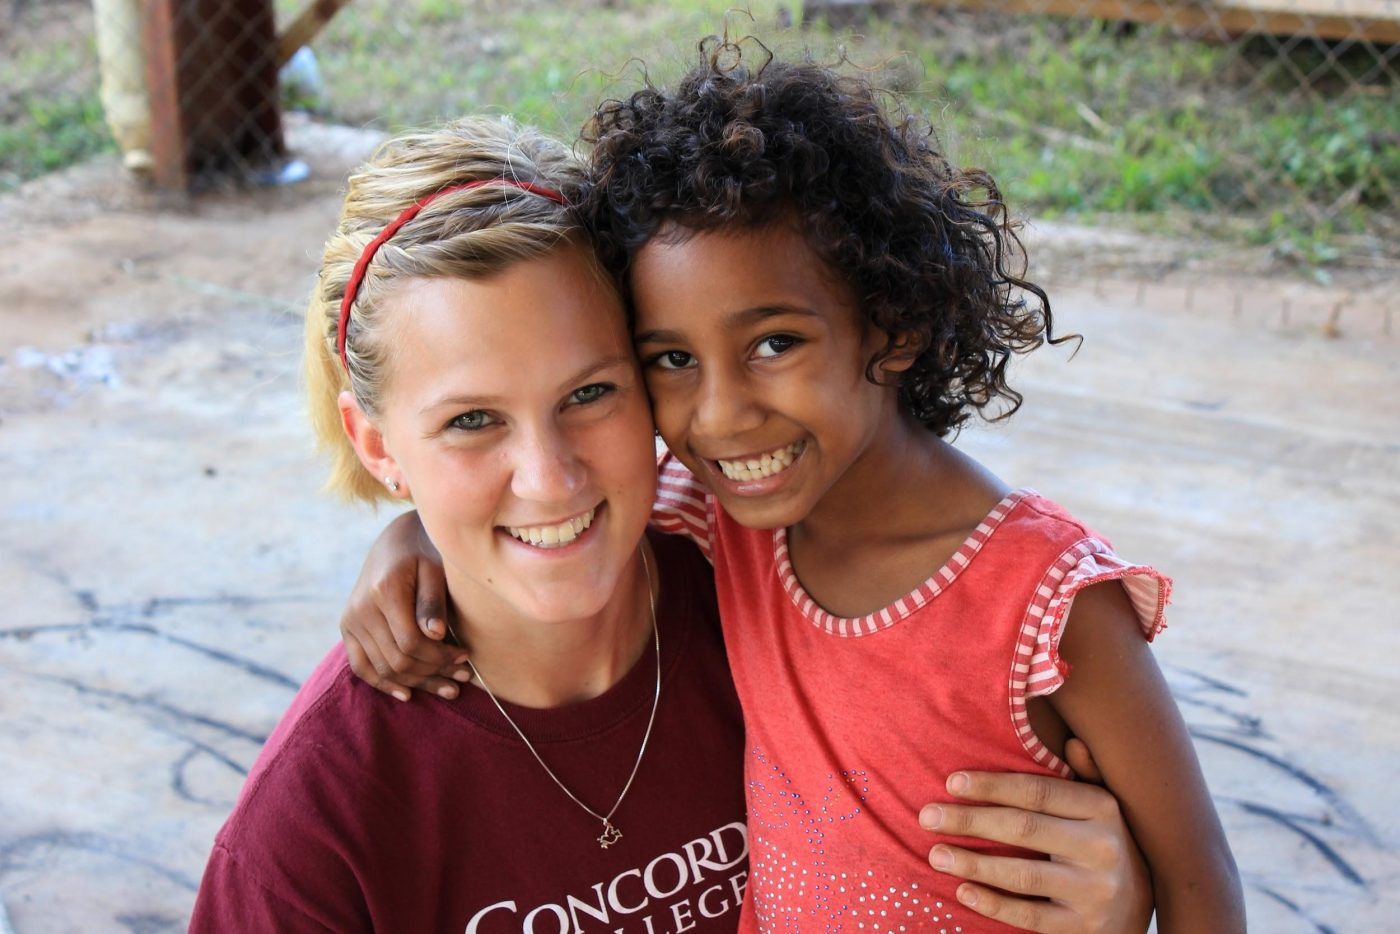 6 Things You Might Not Know About Short-Term Mission Trips